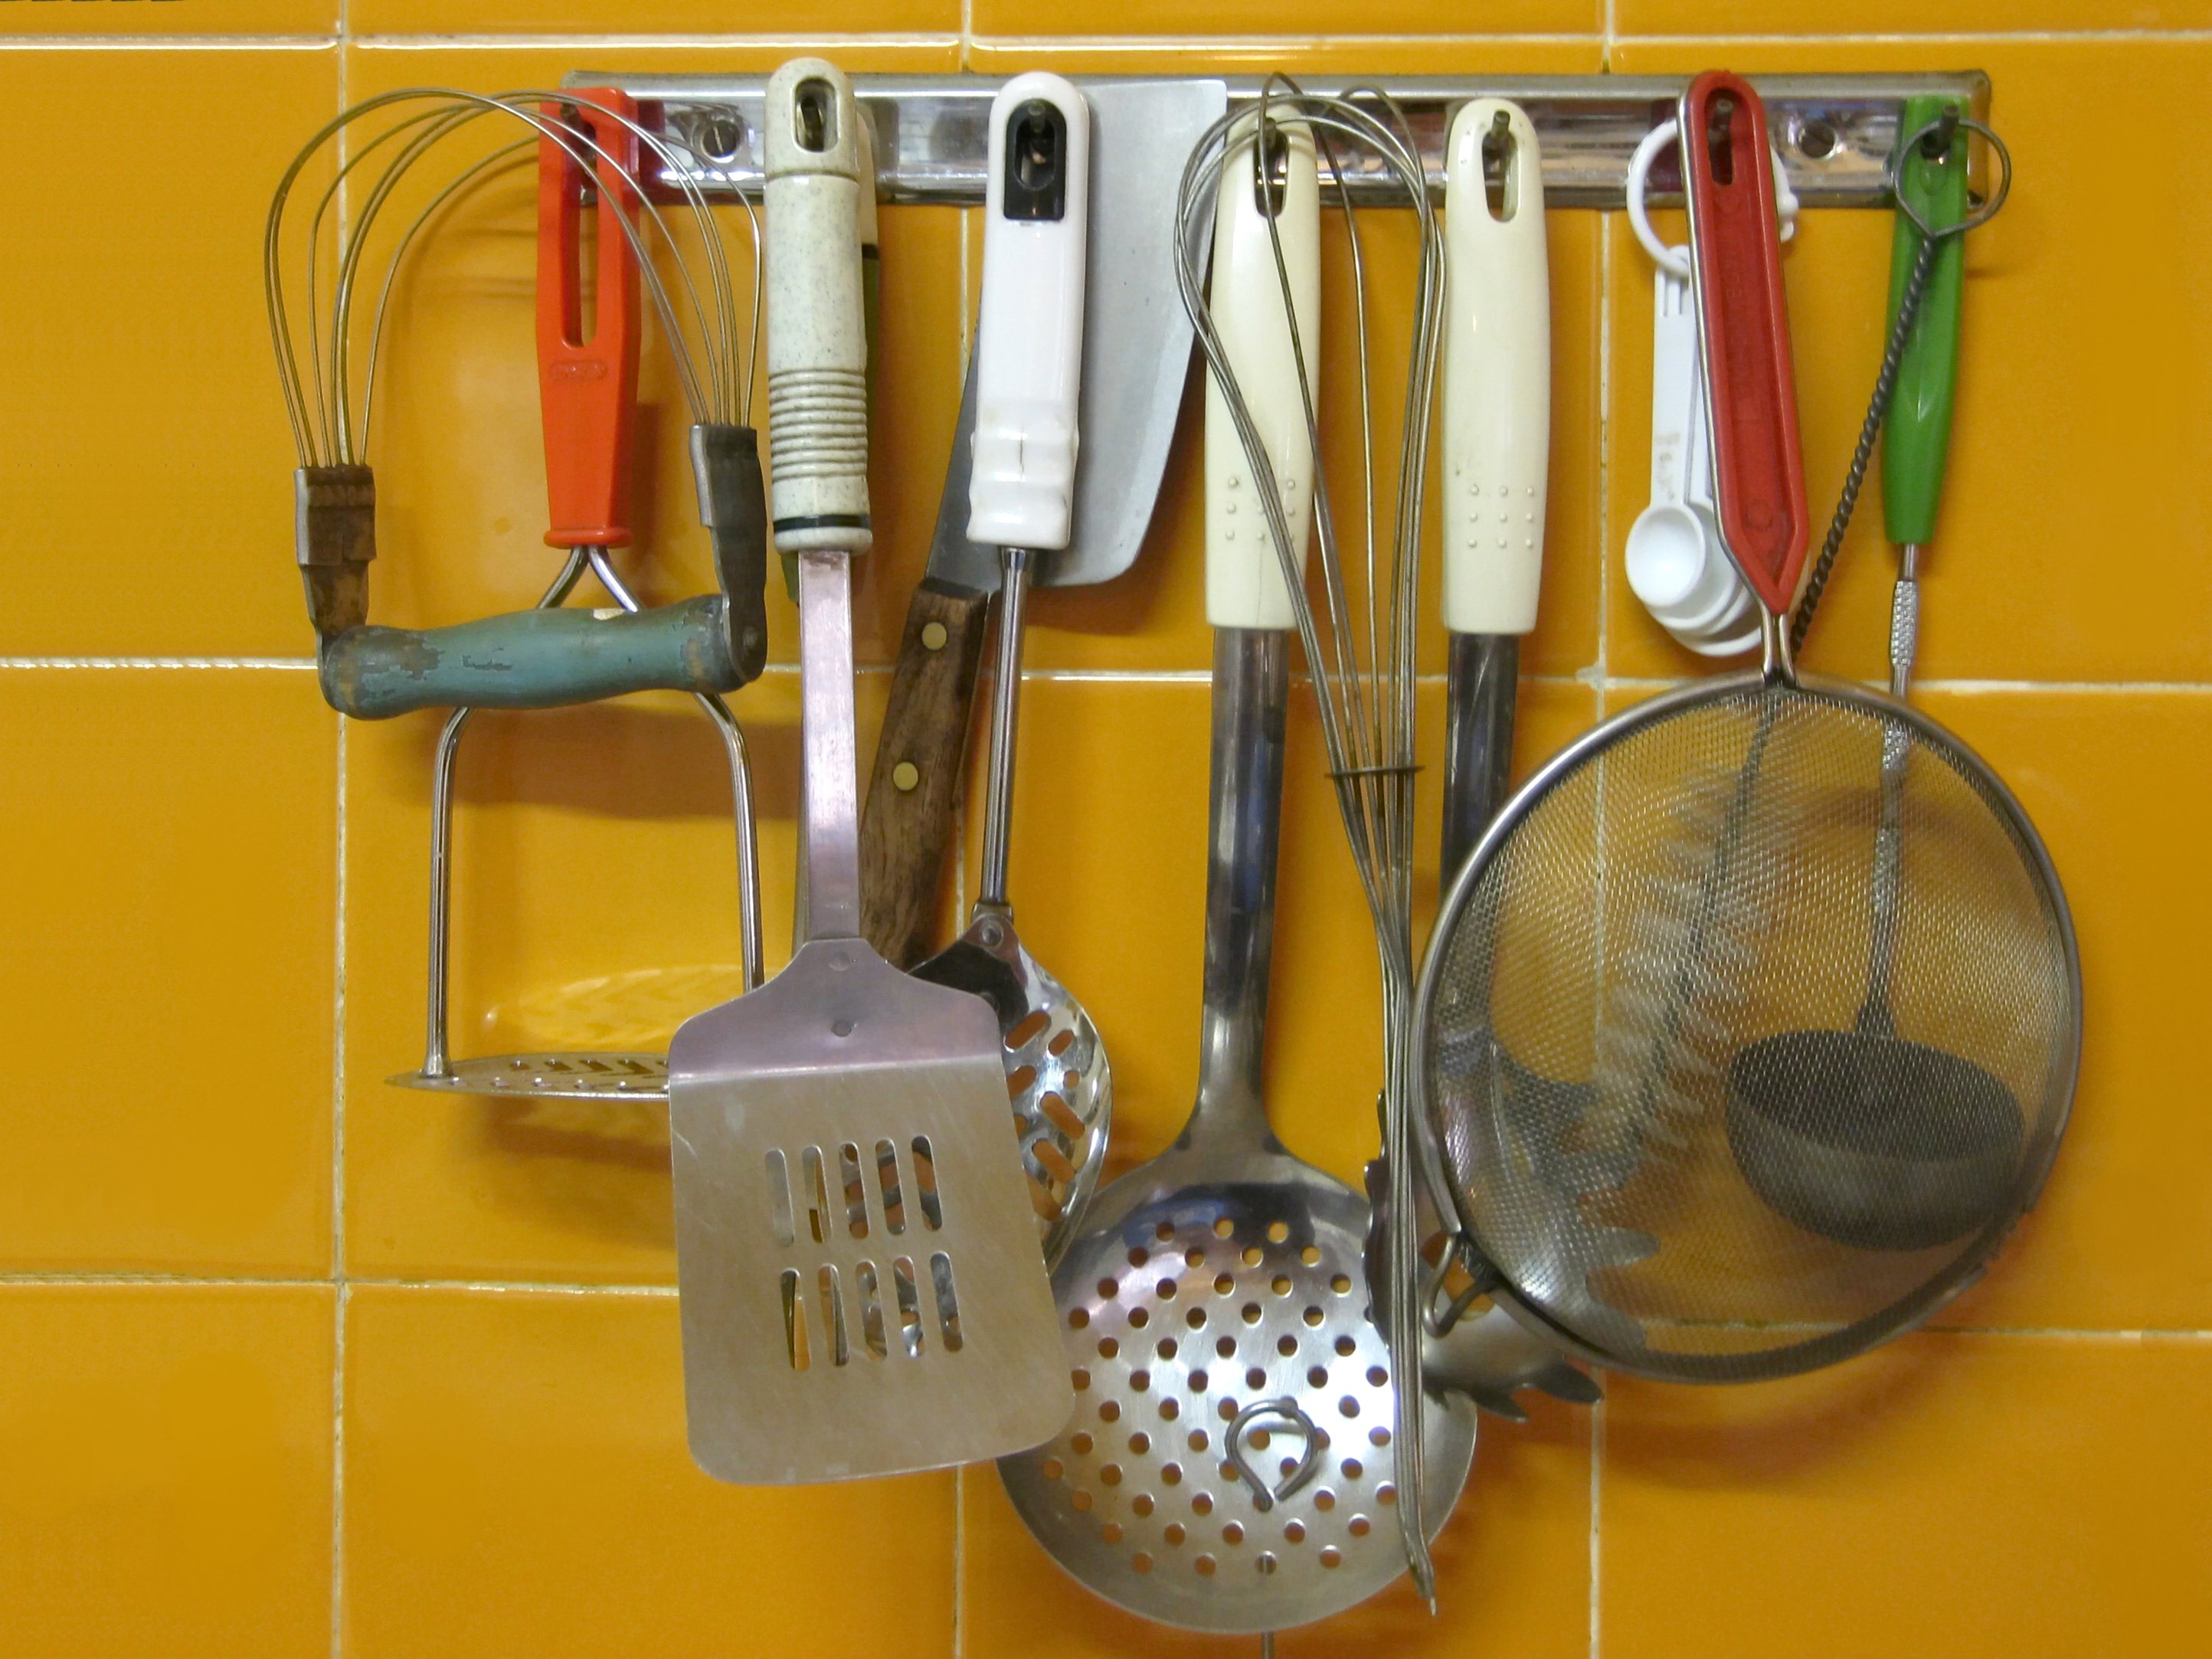 File:Kitchen utensils-01.jpg - Wikimedia Commons